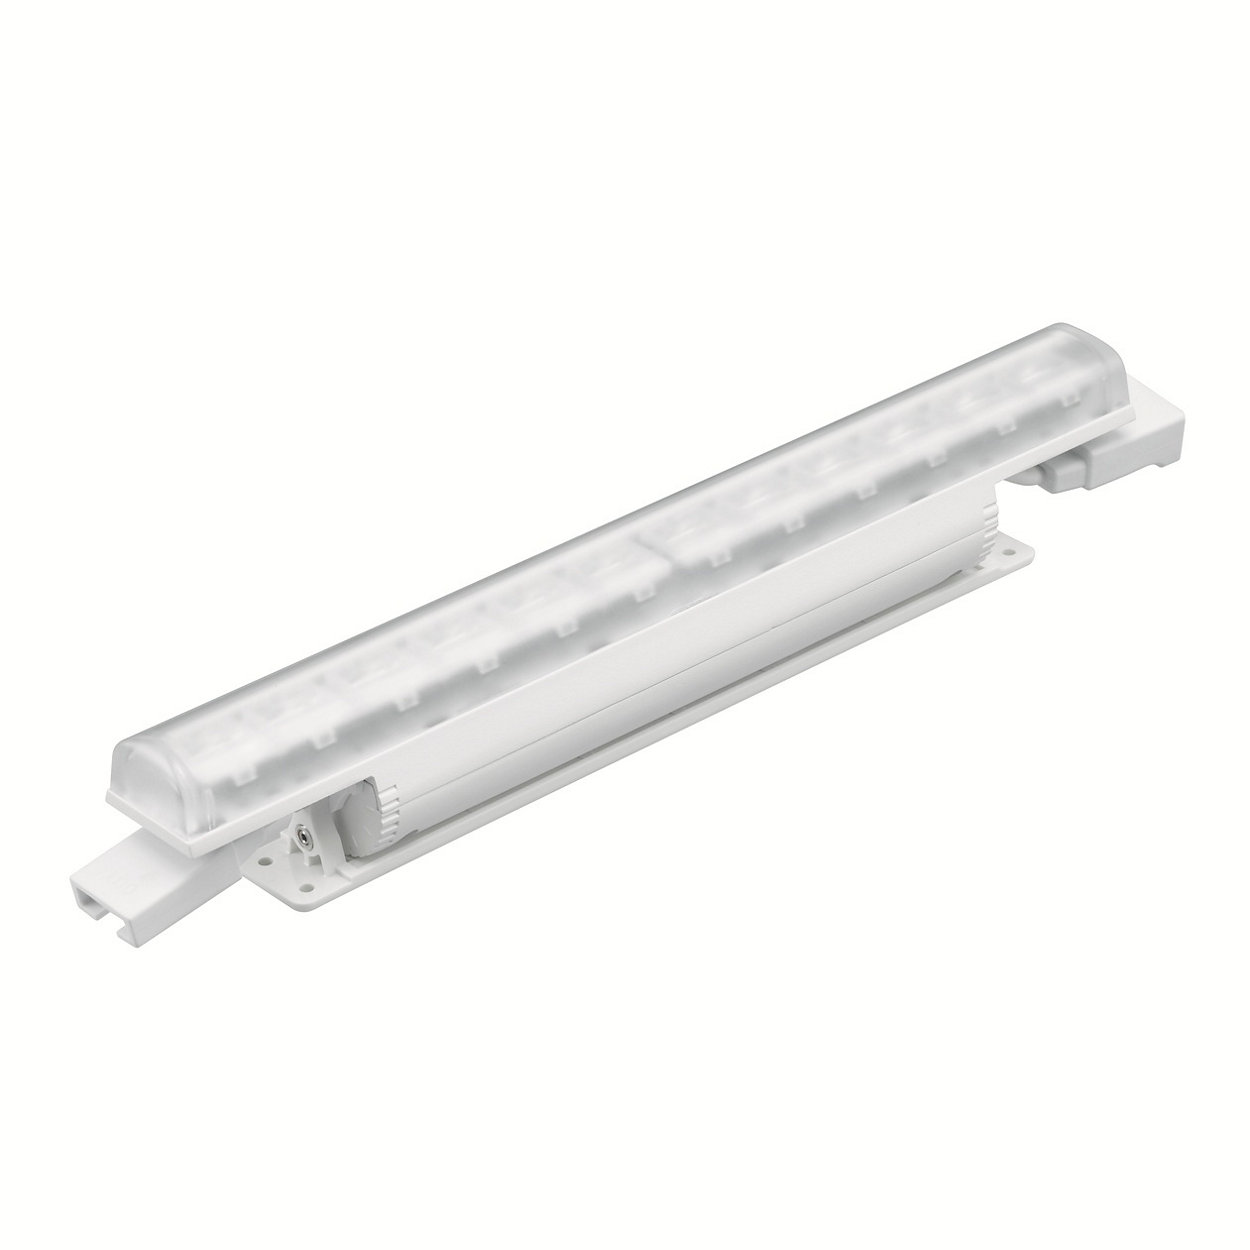 eW Fuse Powercore Precision Dimming – ultra-compact, high-performance LED grazing fixture